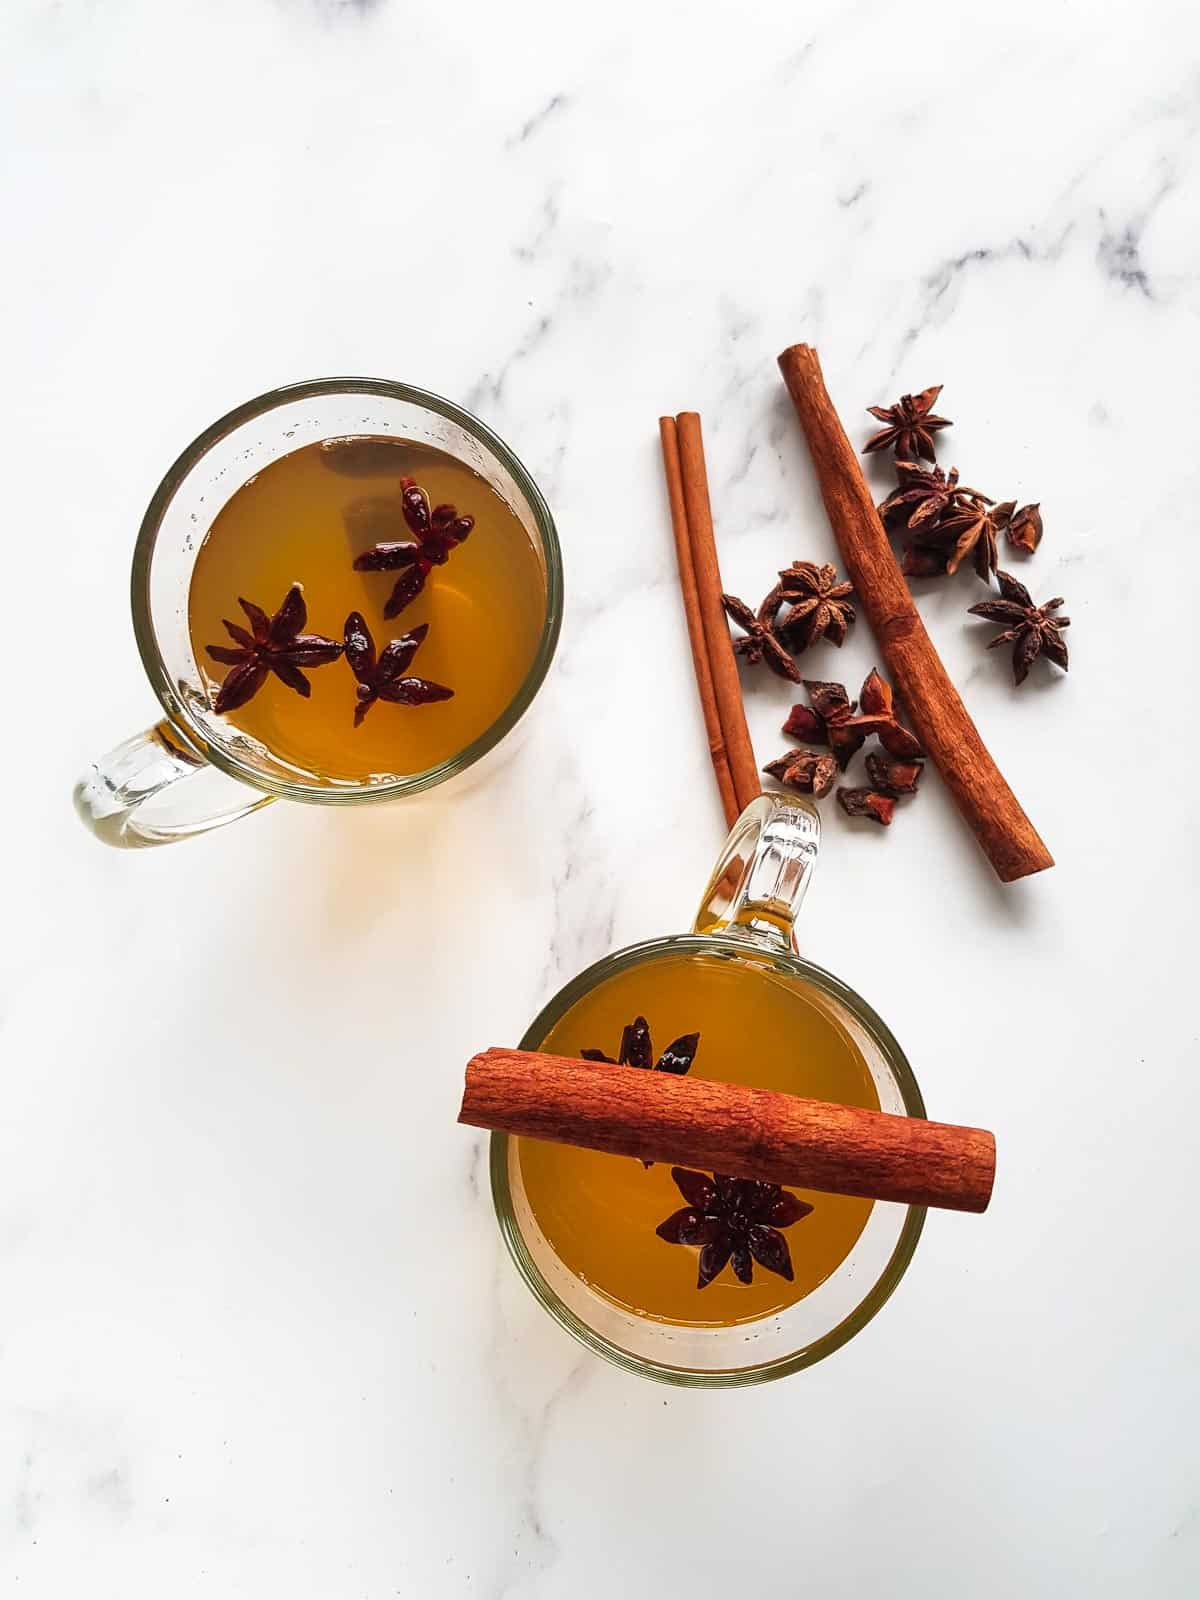 Two cups of star anise tea, with cinnamon sticks and star anise on the side.